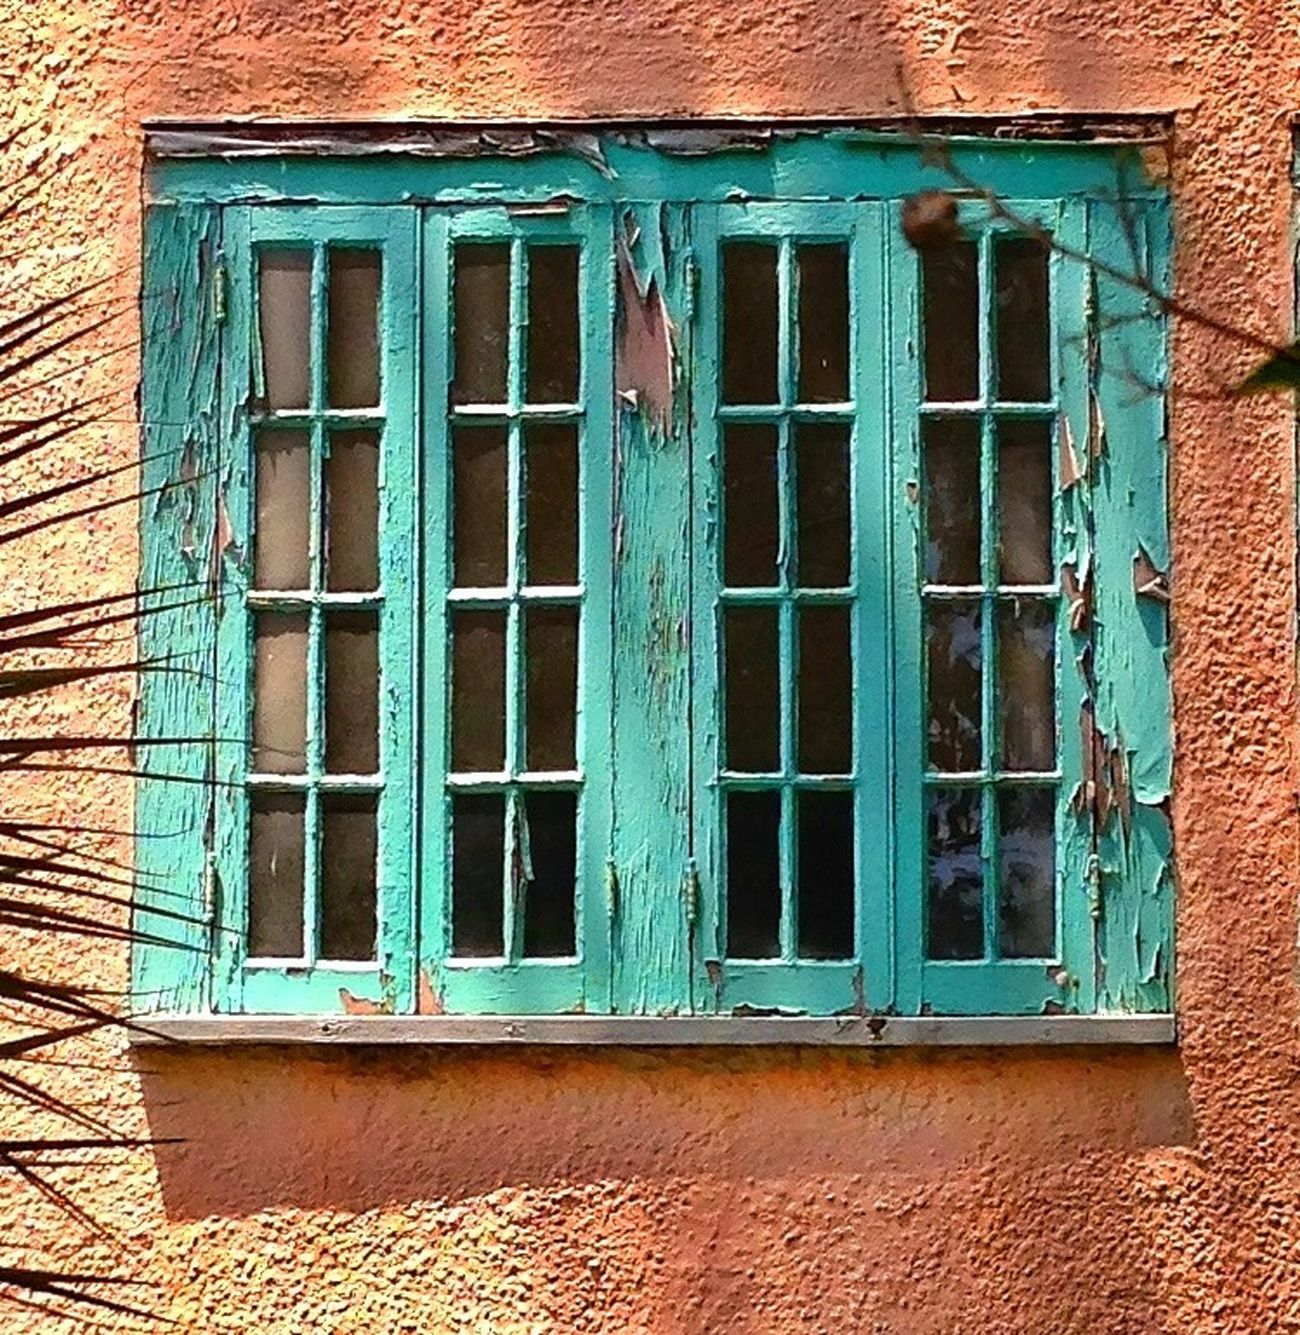 IPhoneography Windows Beauty Of Decay Wabi-sabi